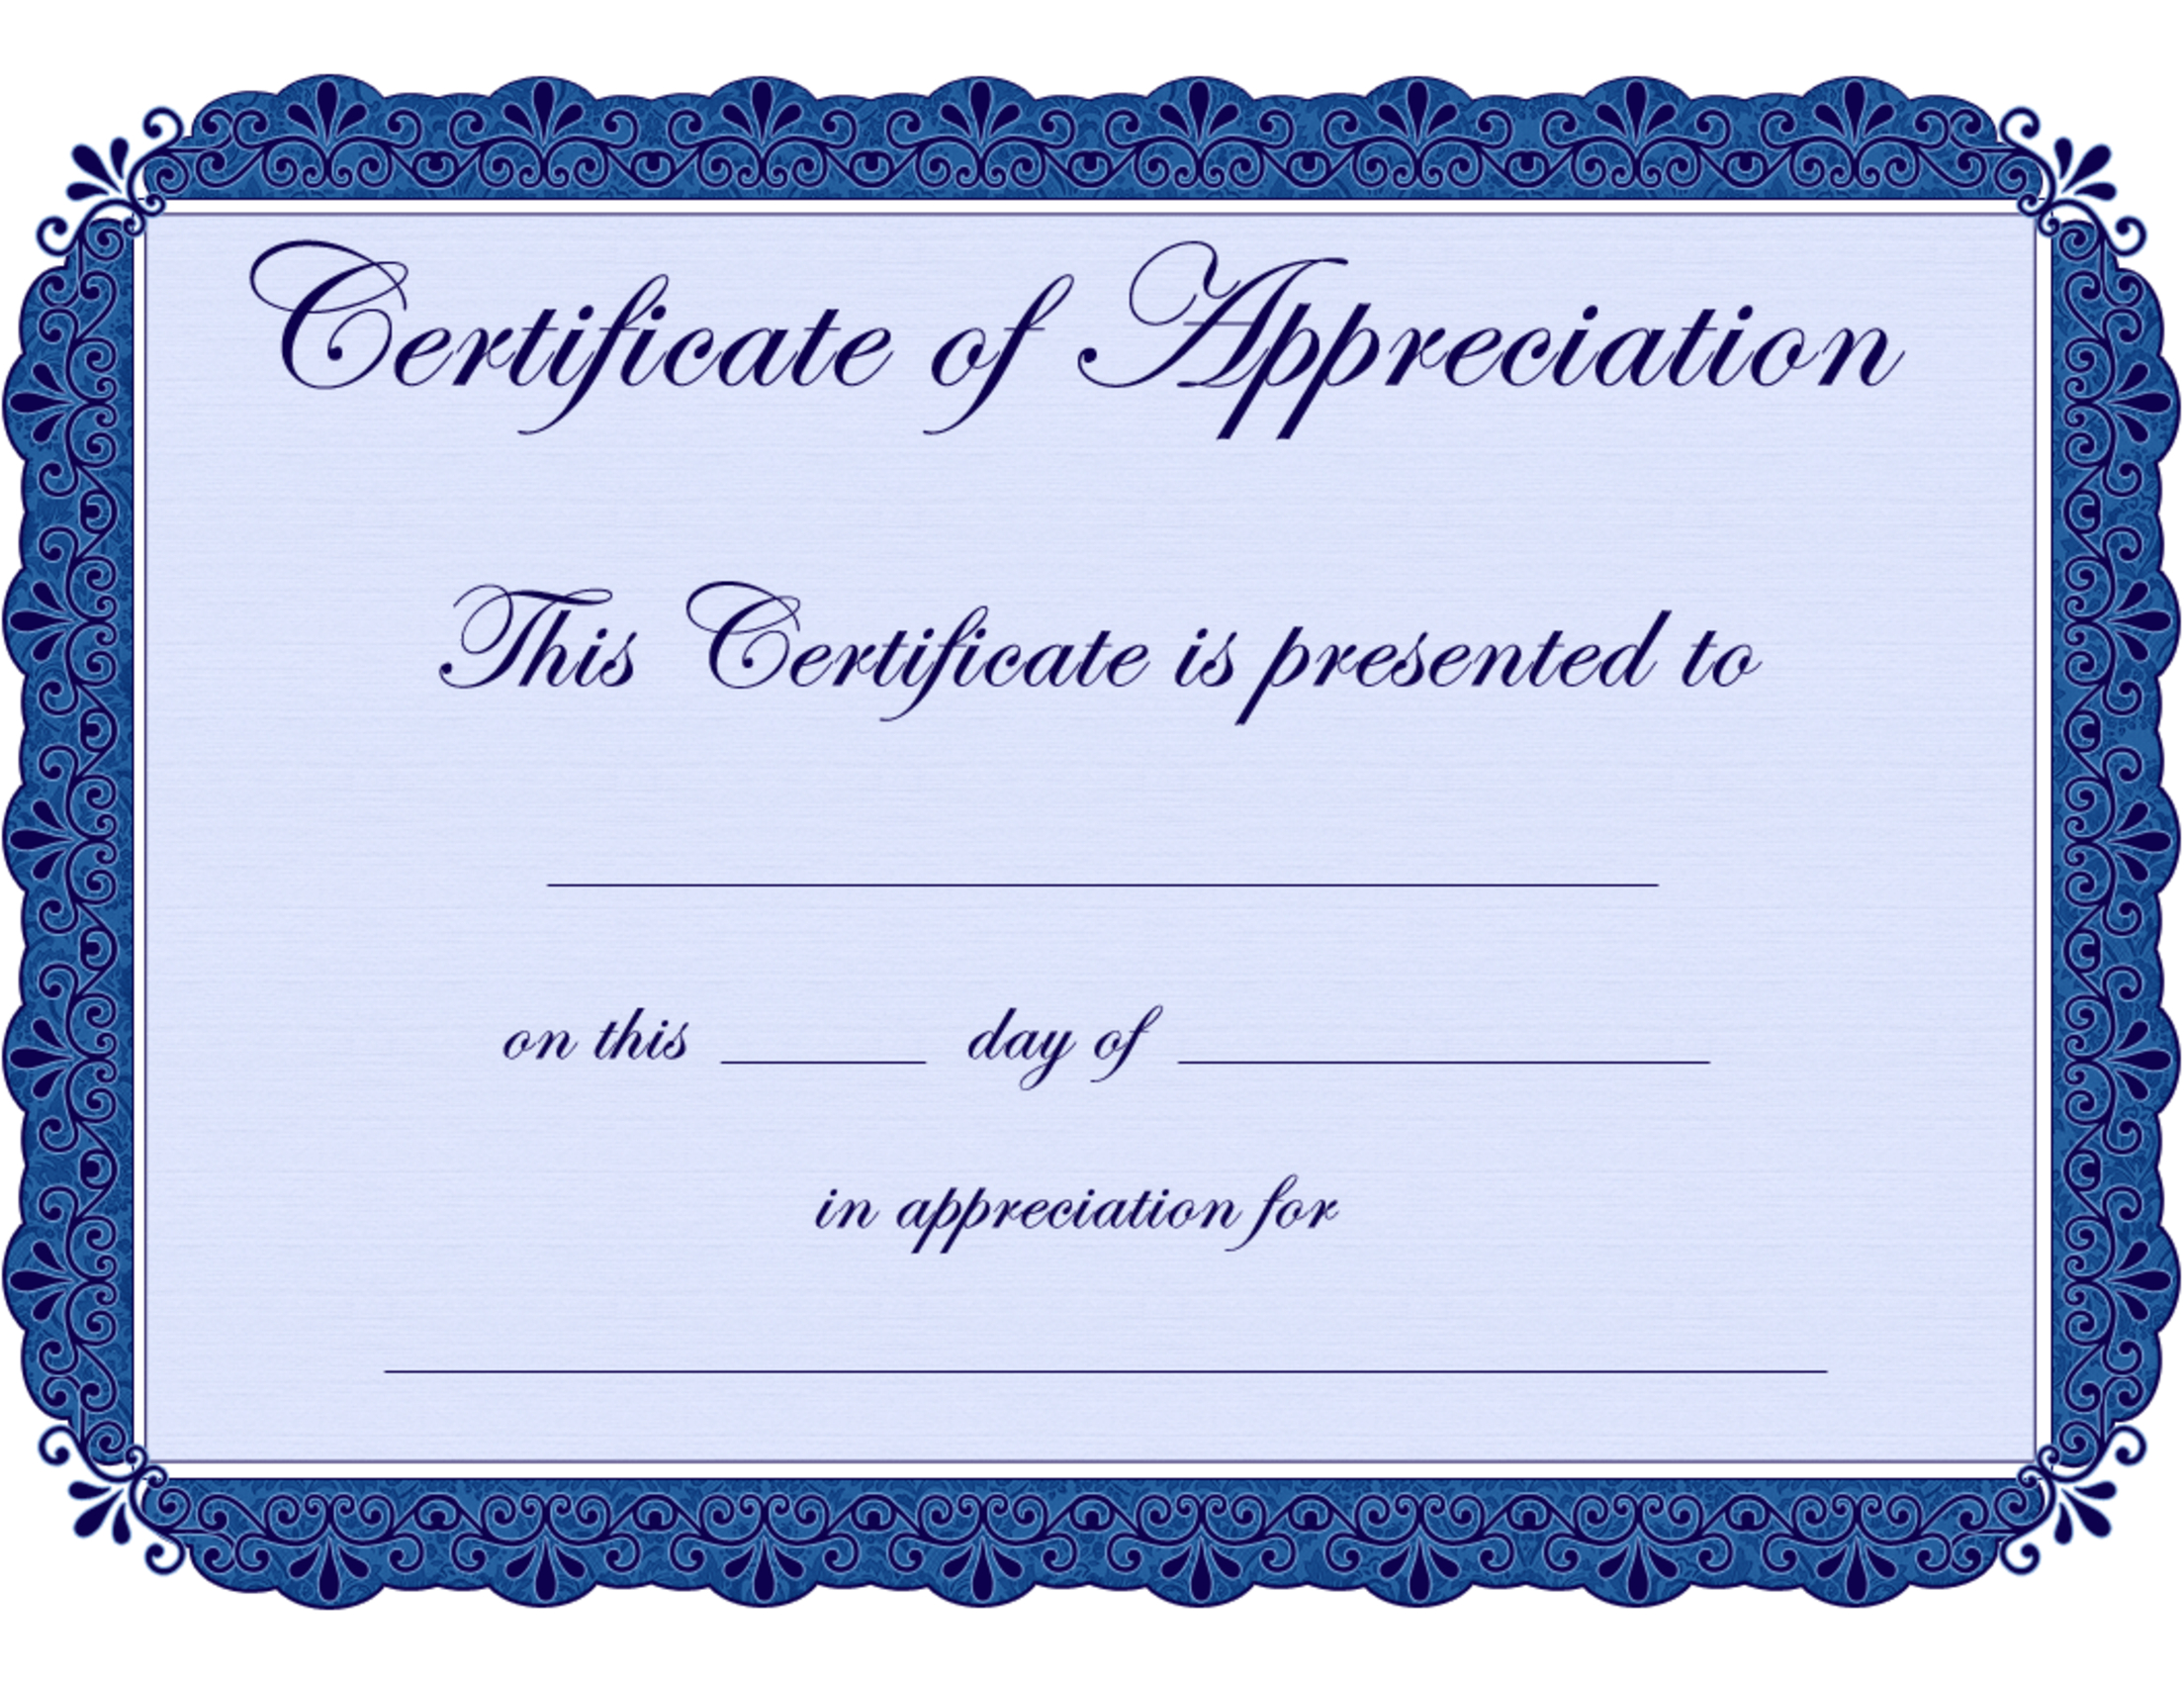 Free Printable Certificates Certificate Of Appreciation Certificate - Free Printable Certificate Of Appreciation